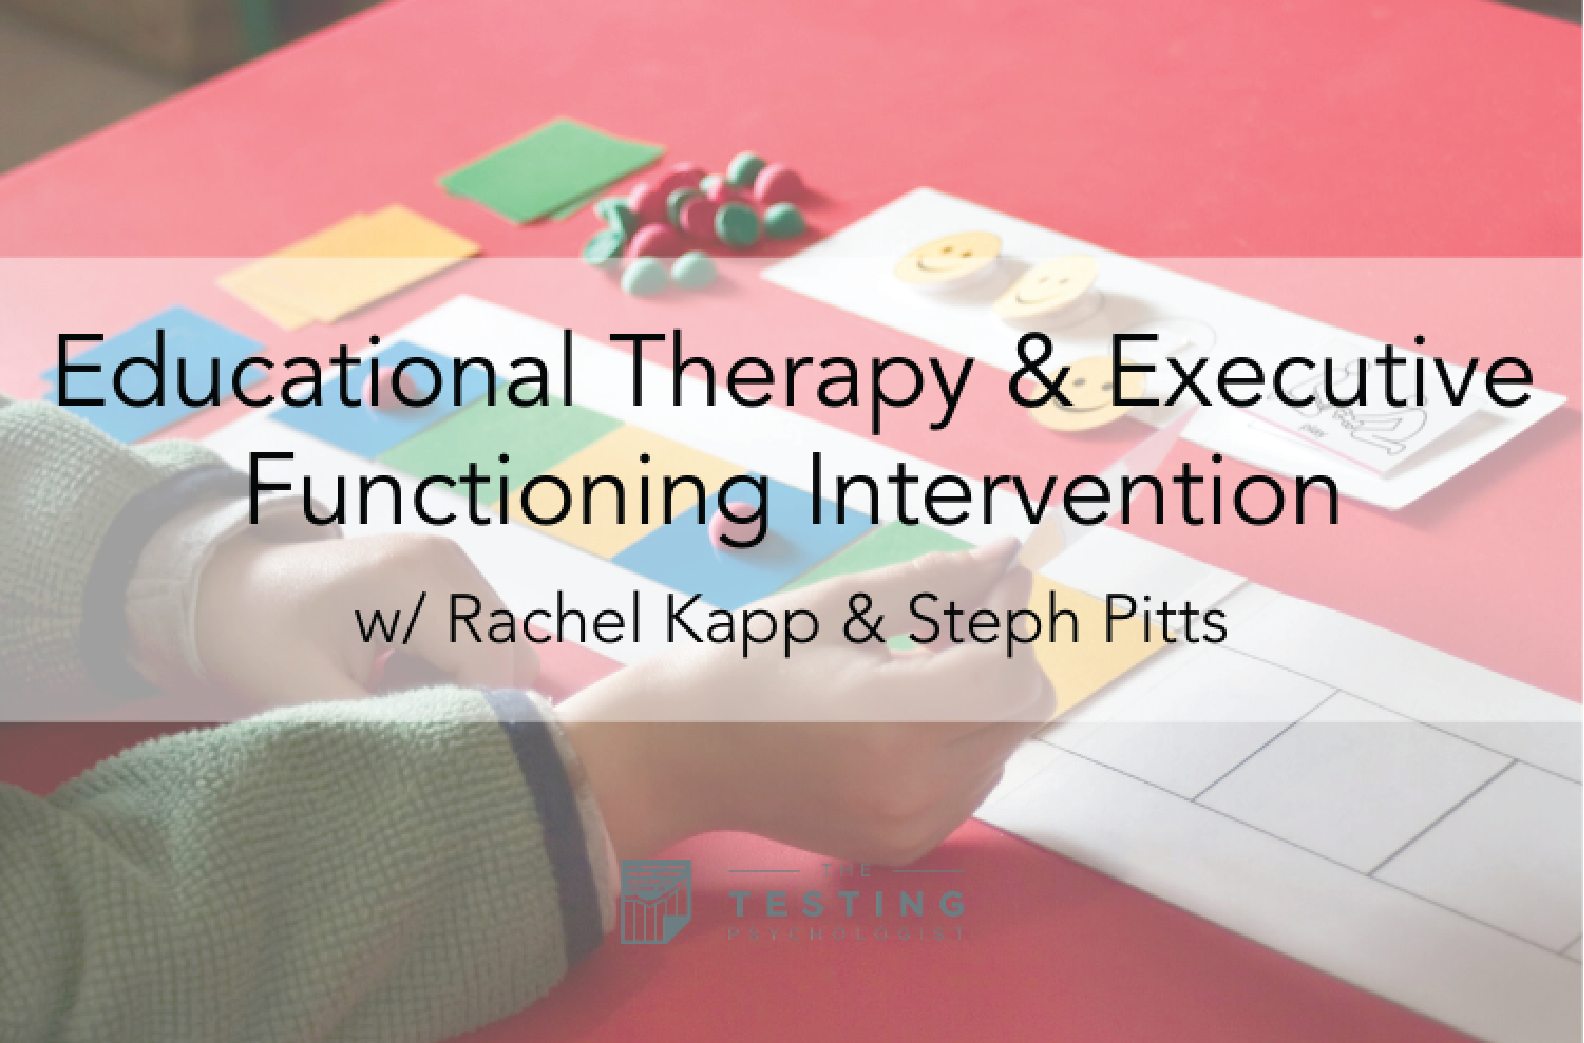 Educational Therapy & Executive Functioning Intervention